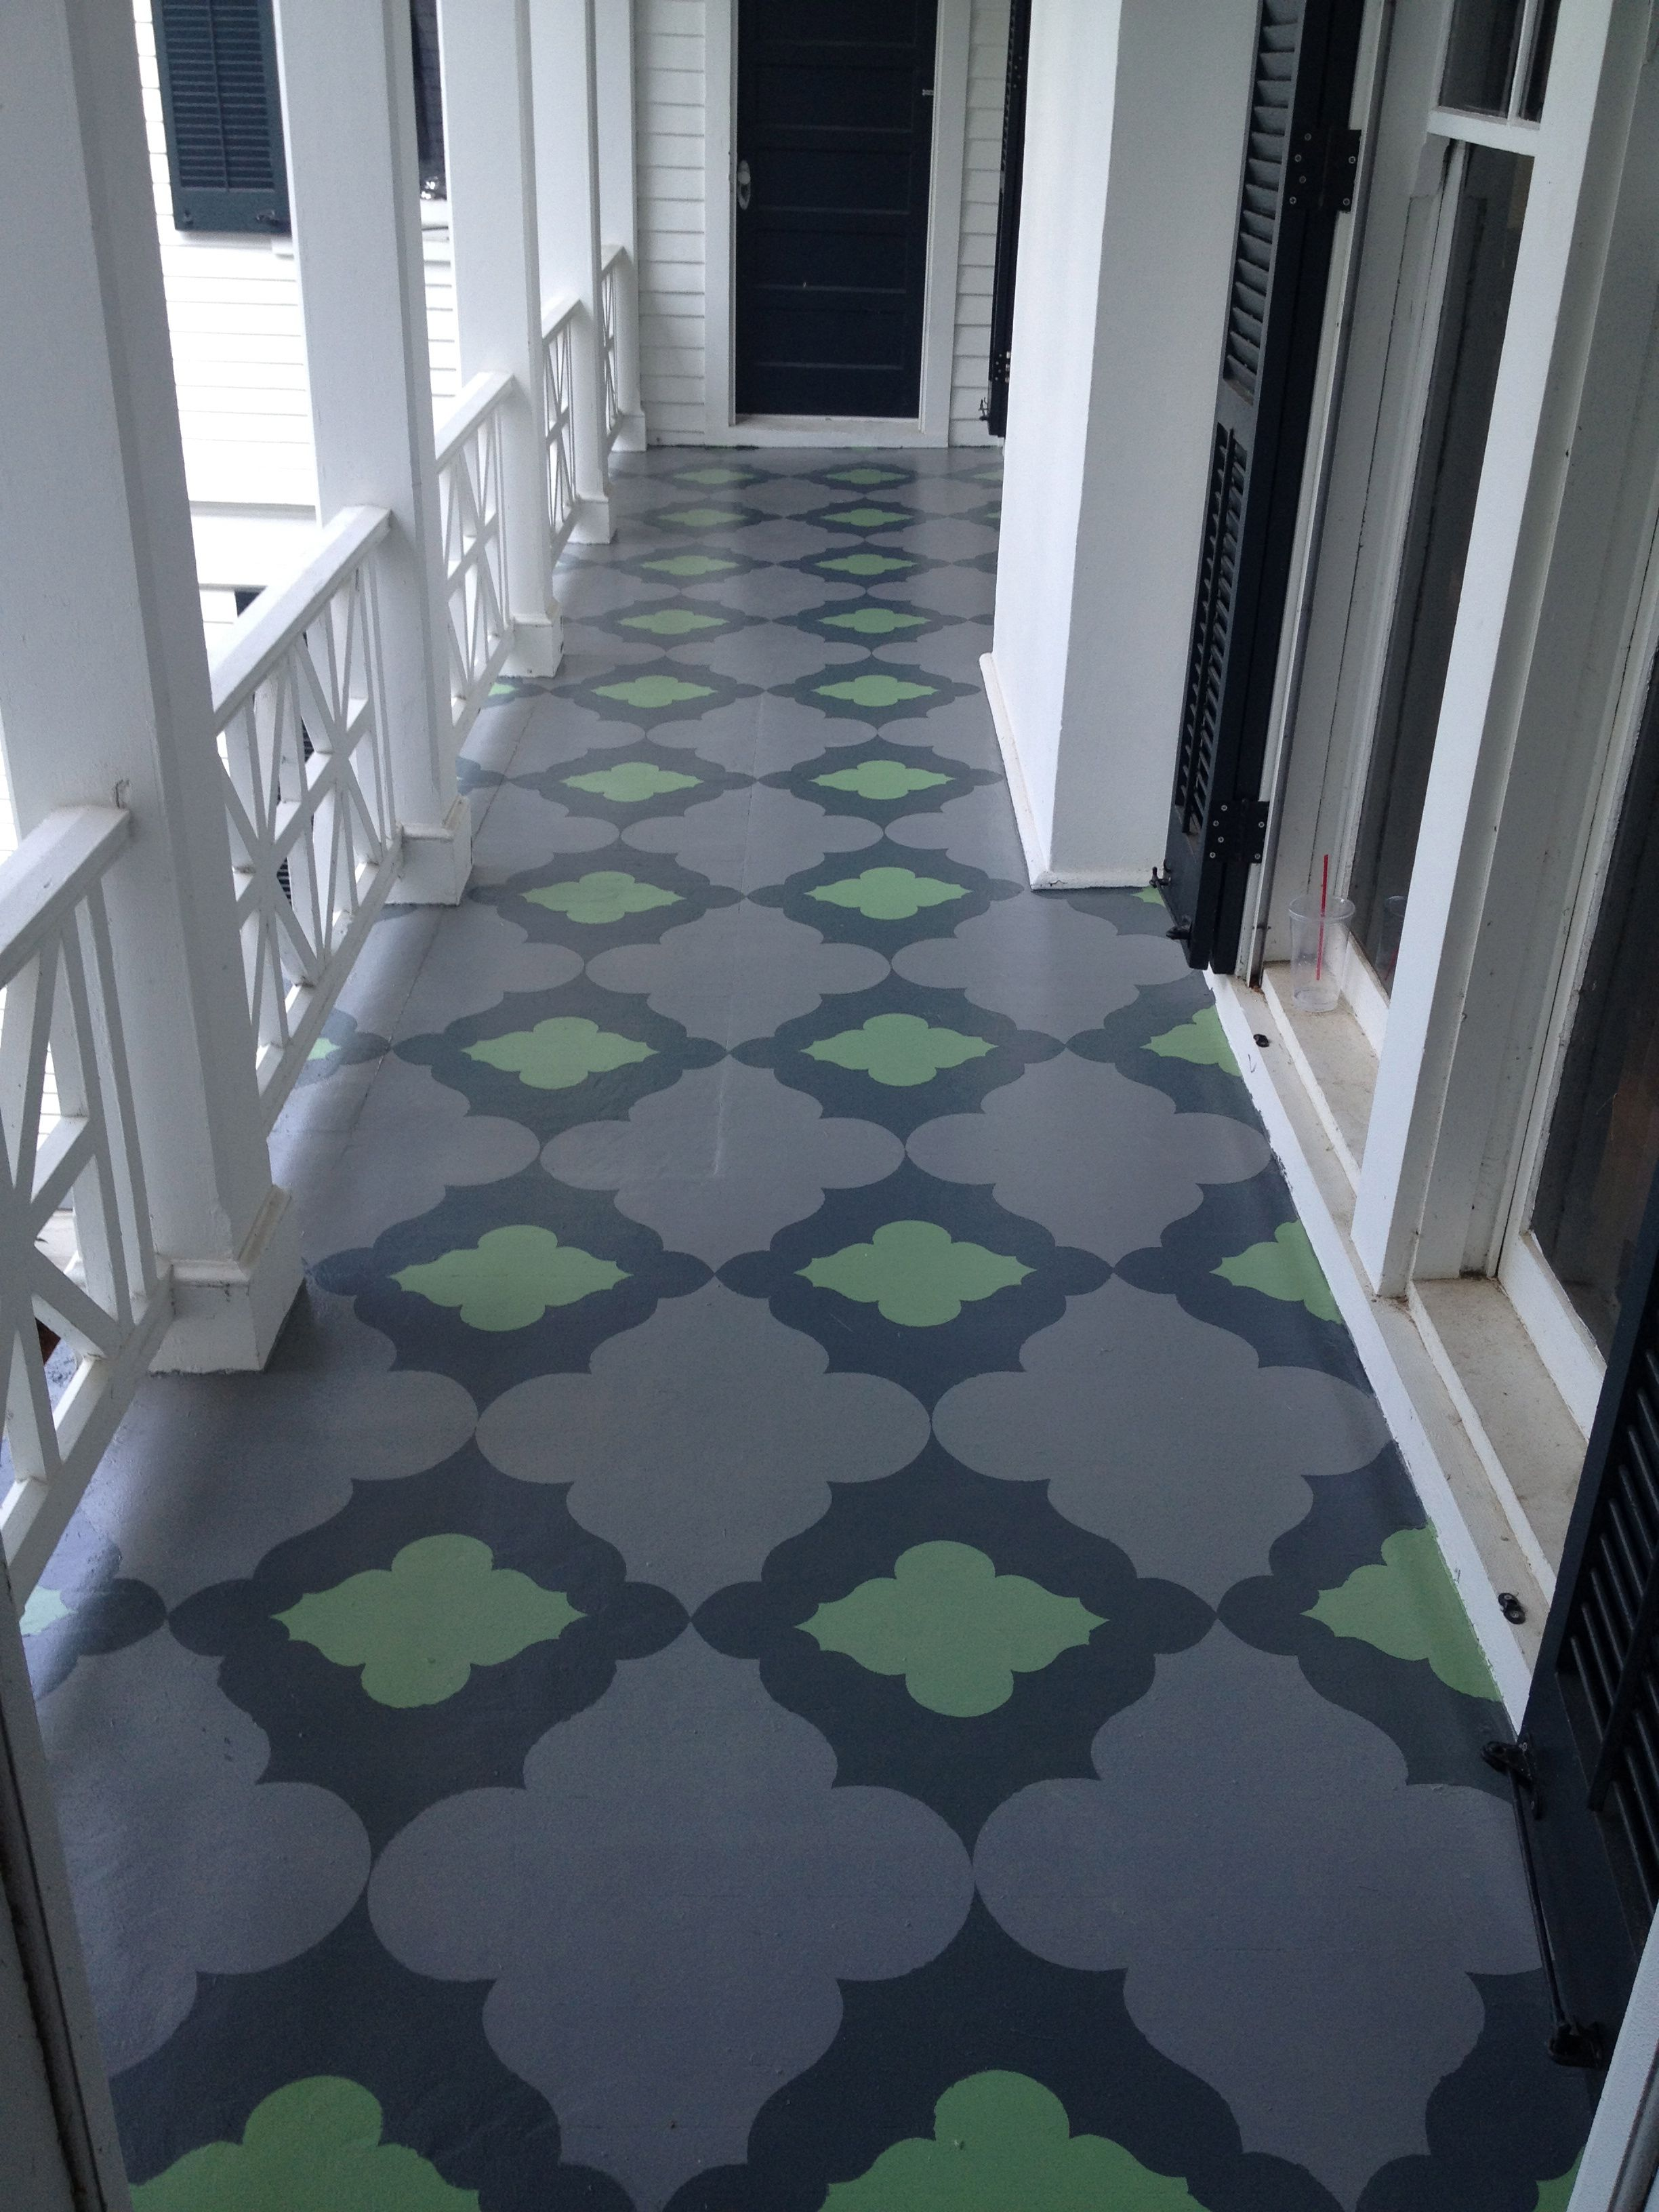 Painted Floor By Sunny Goode Richmond Va Love Designer House